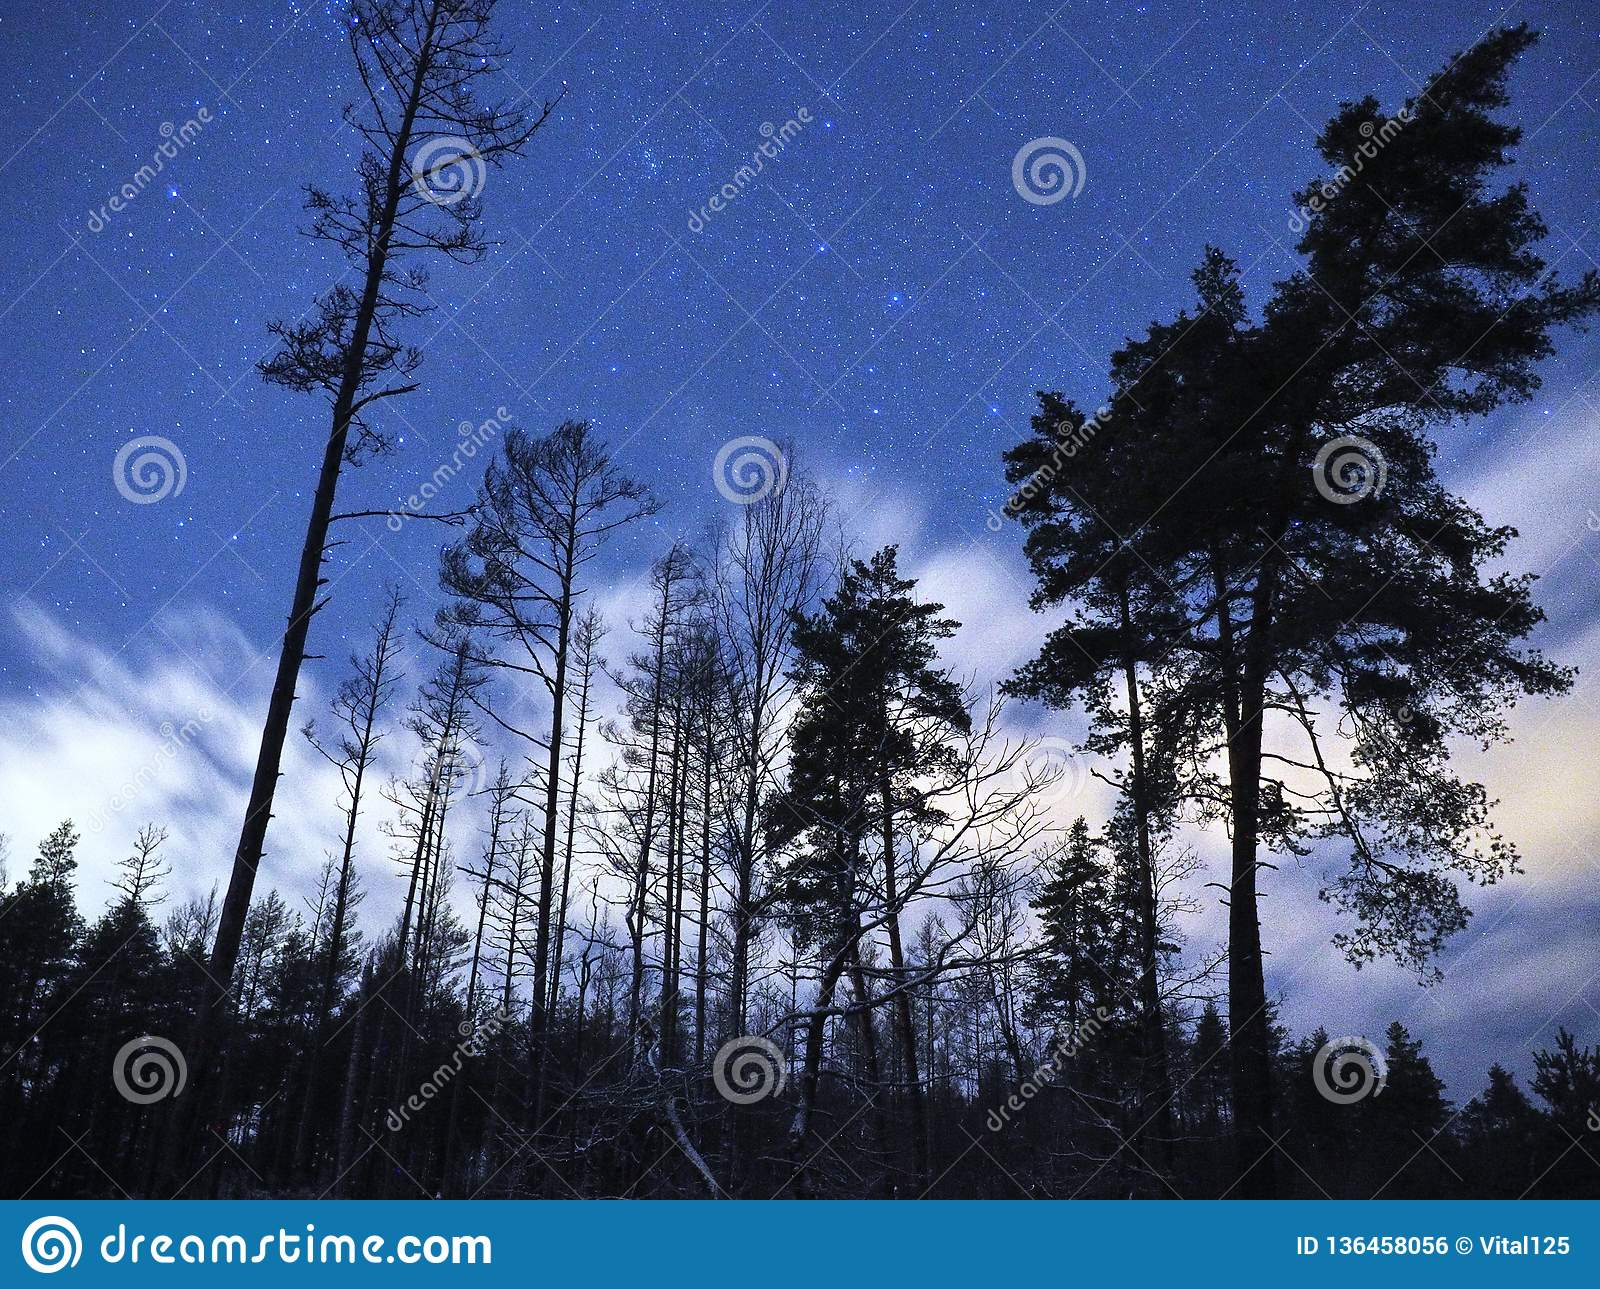 Cassiopeia constellation stars on night sky and clouds over winter forest